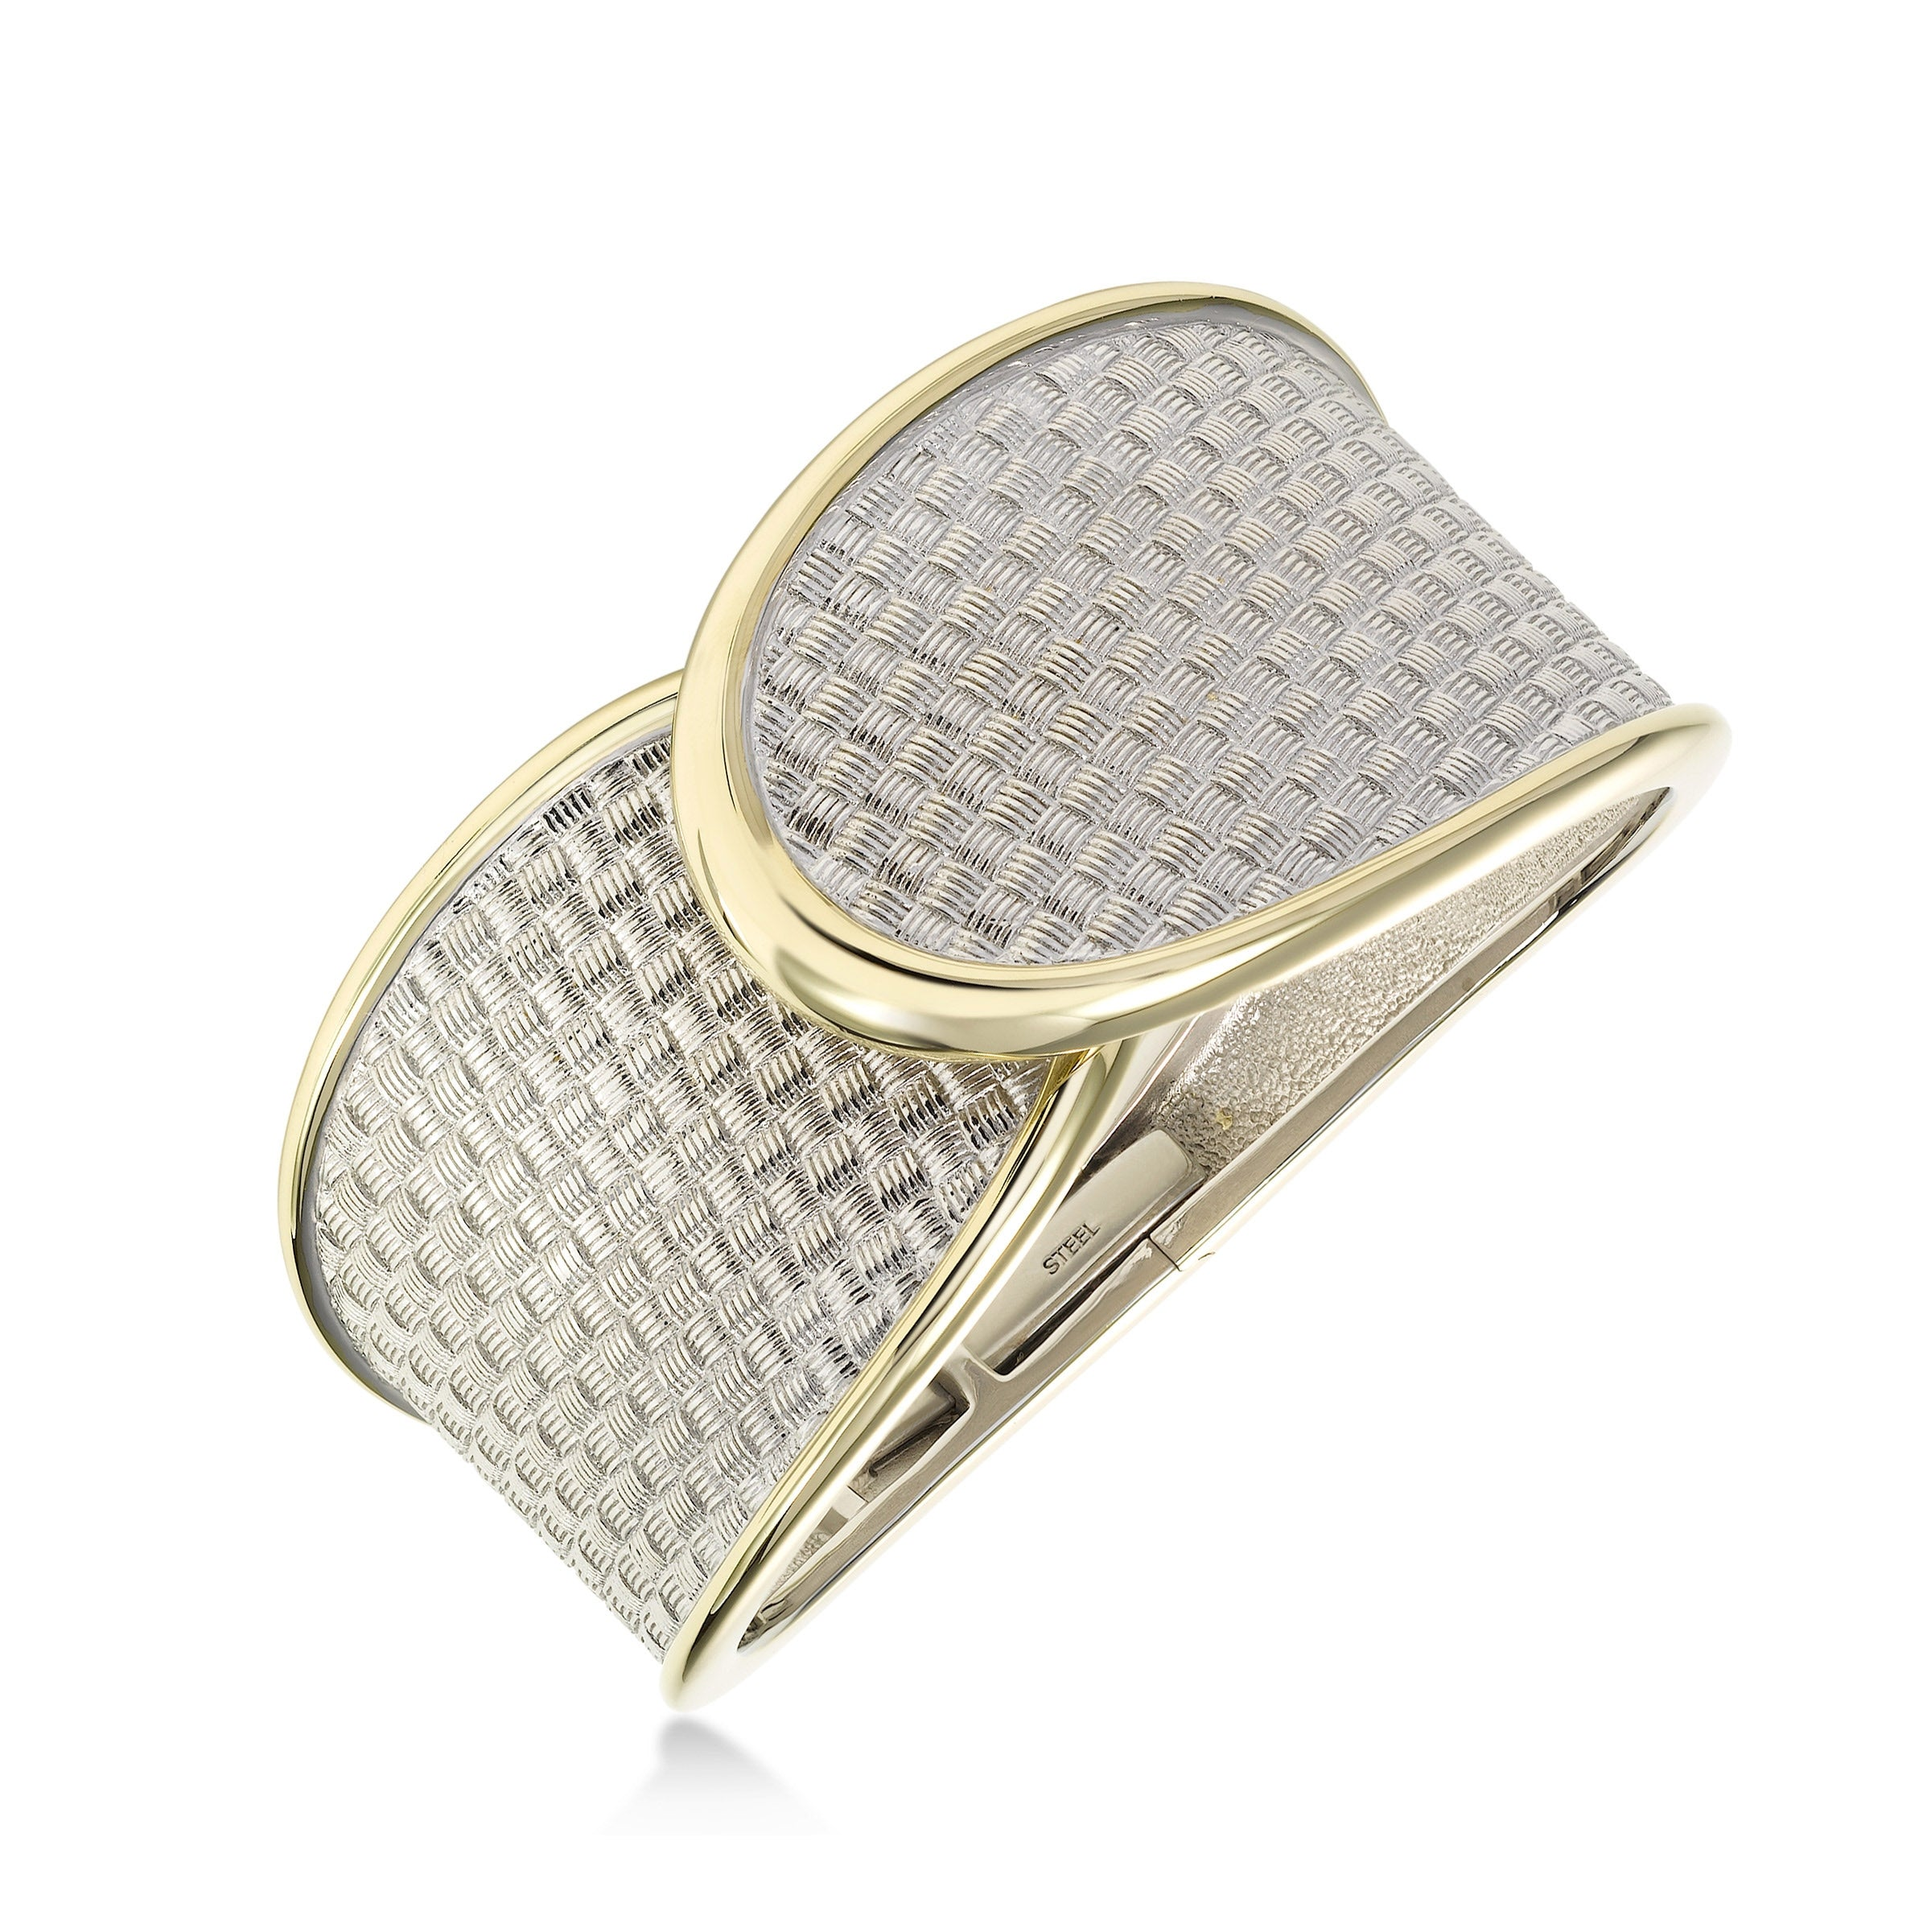 Weave Design Cuff Bracelet, Sterling Silver with Yellow Gold Plating